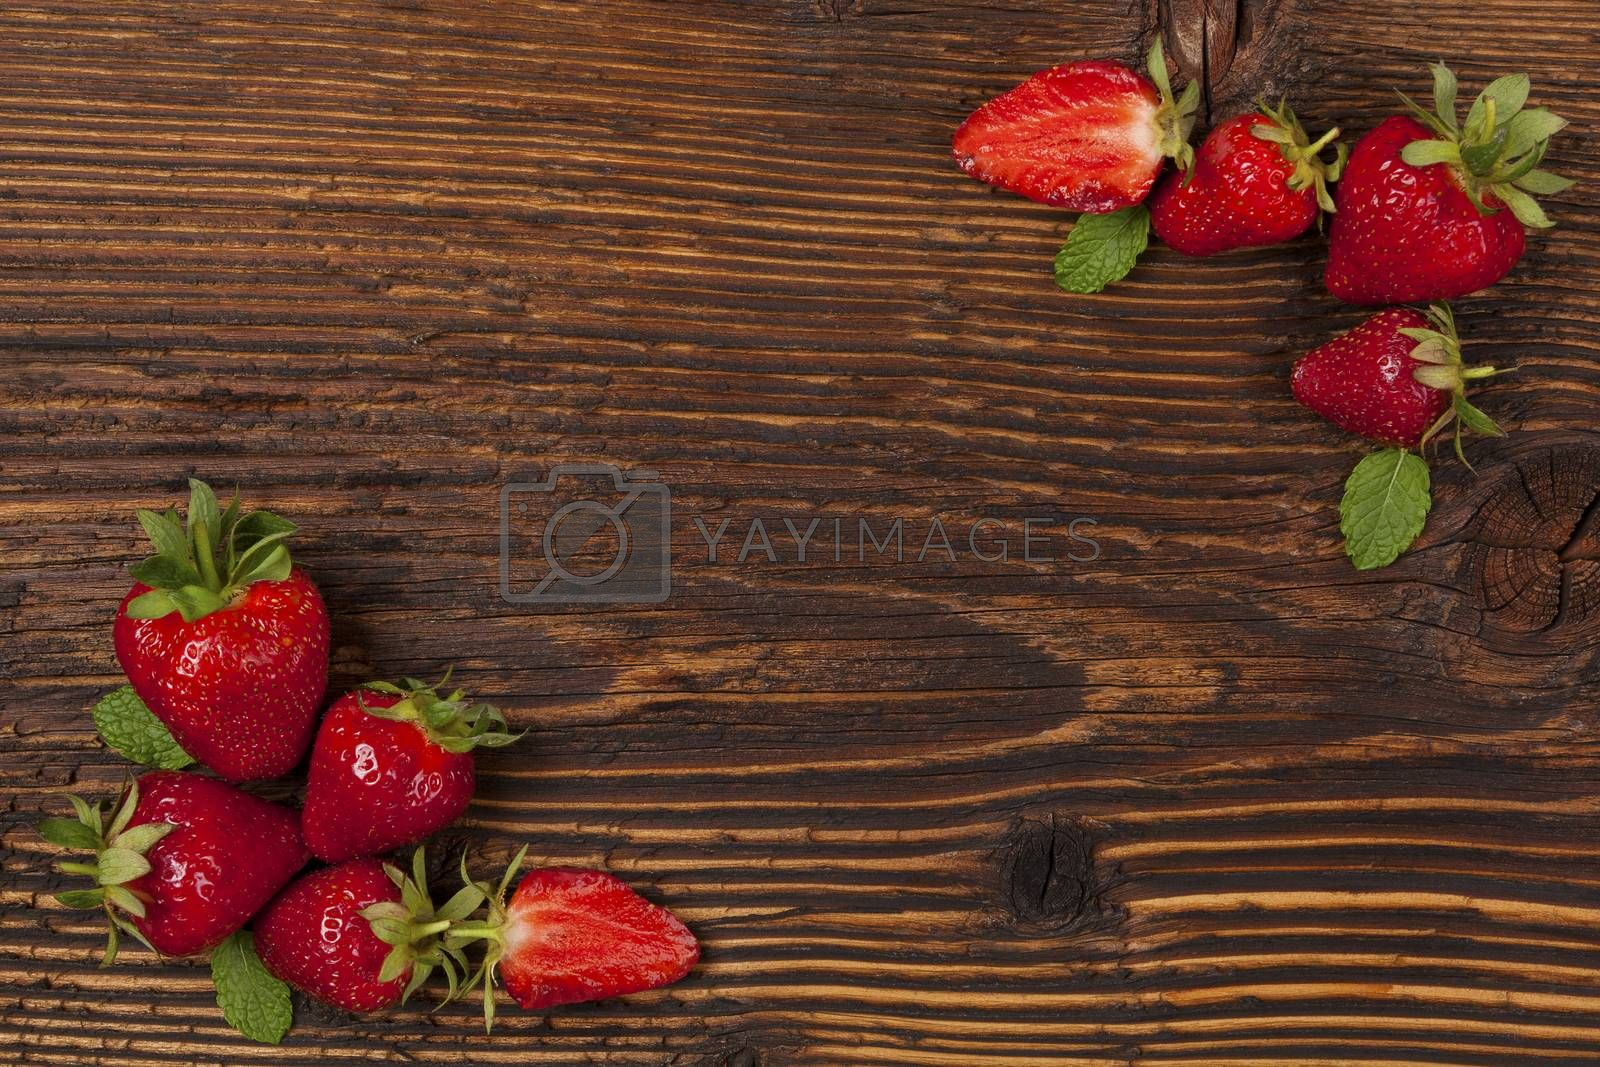 Ripe strawberries on rustic wooden brown table, flat lay. Strawberry background with copyspace. Healthy fruit eating.